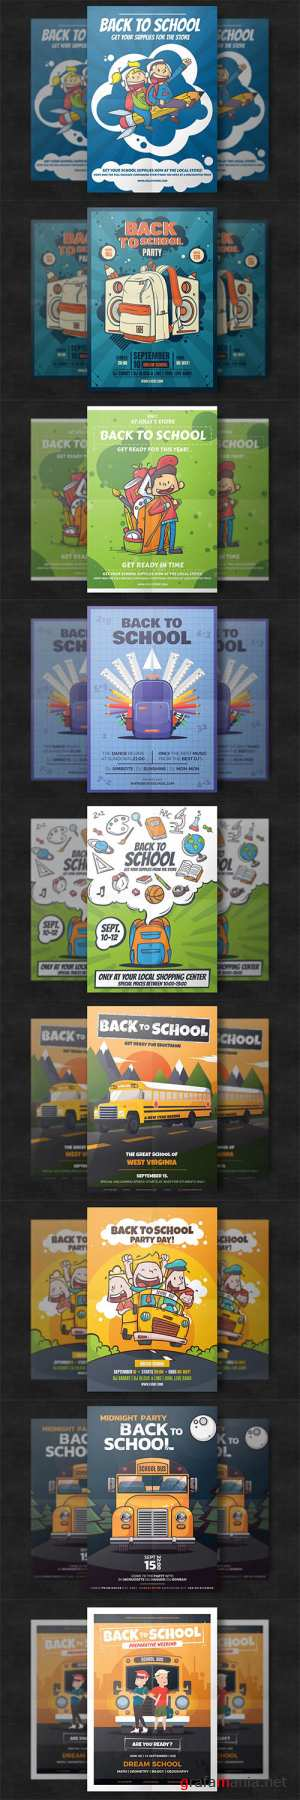 10 Back To School Flyer Templates PSD